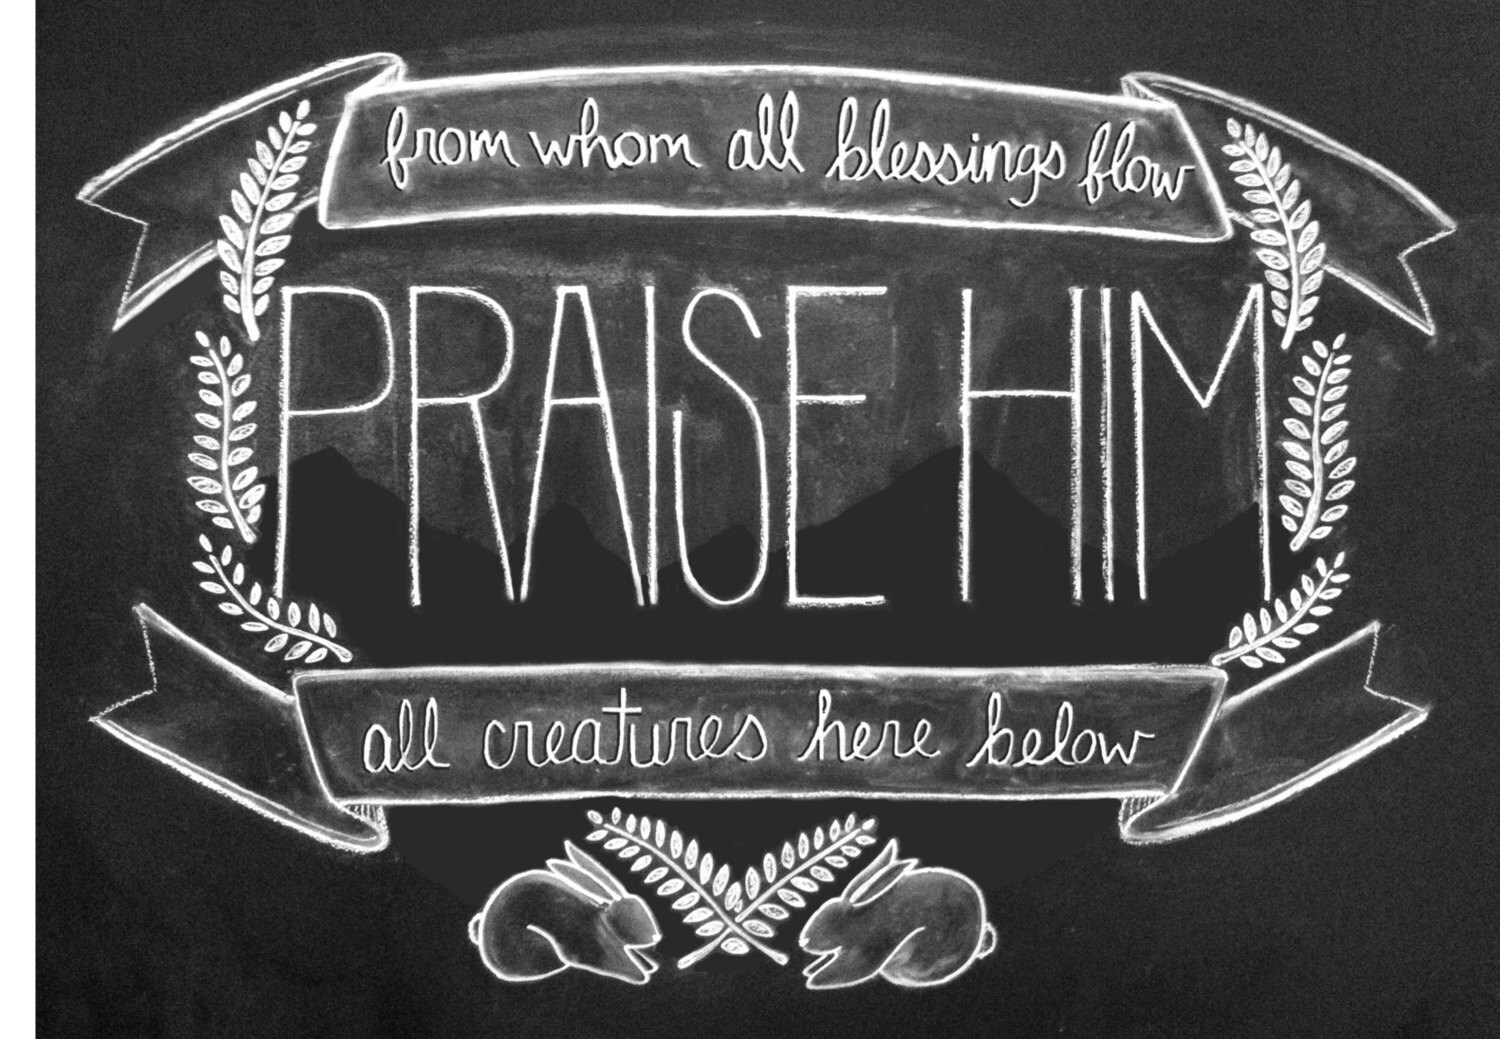 Praise Him - juliamariemartin